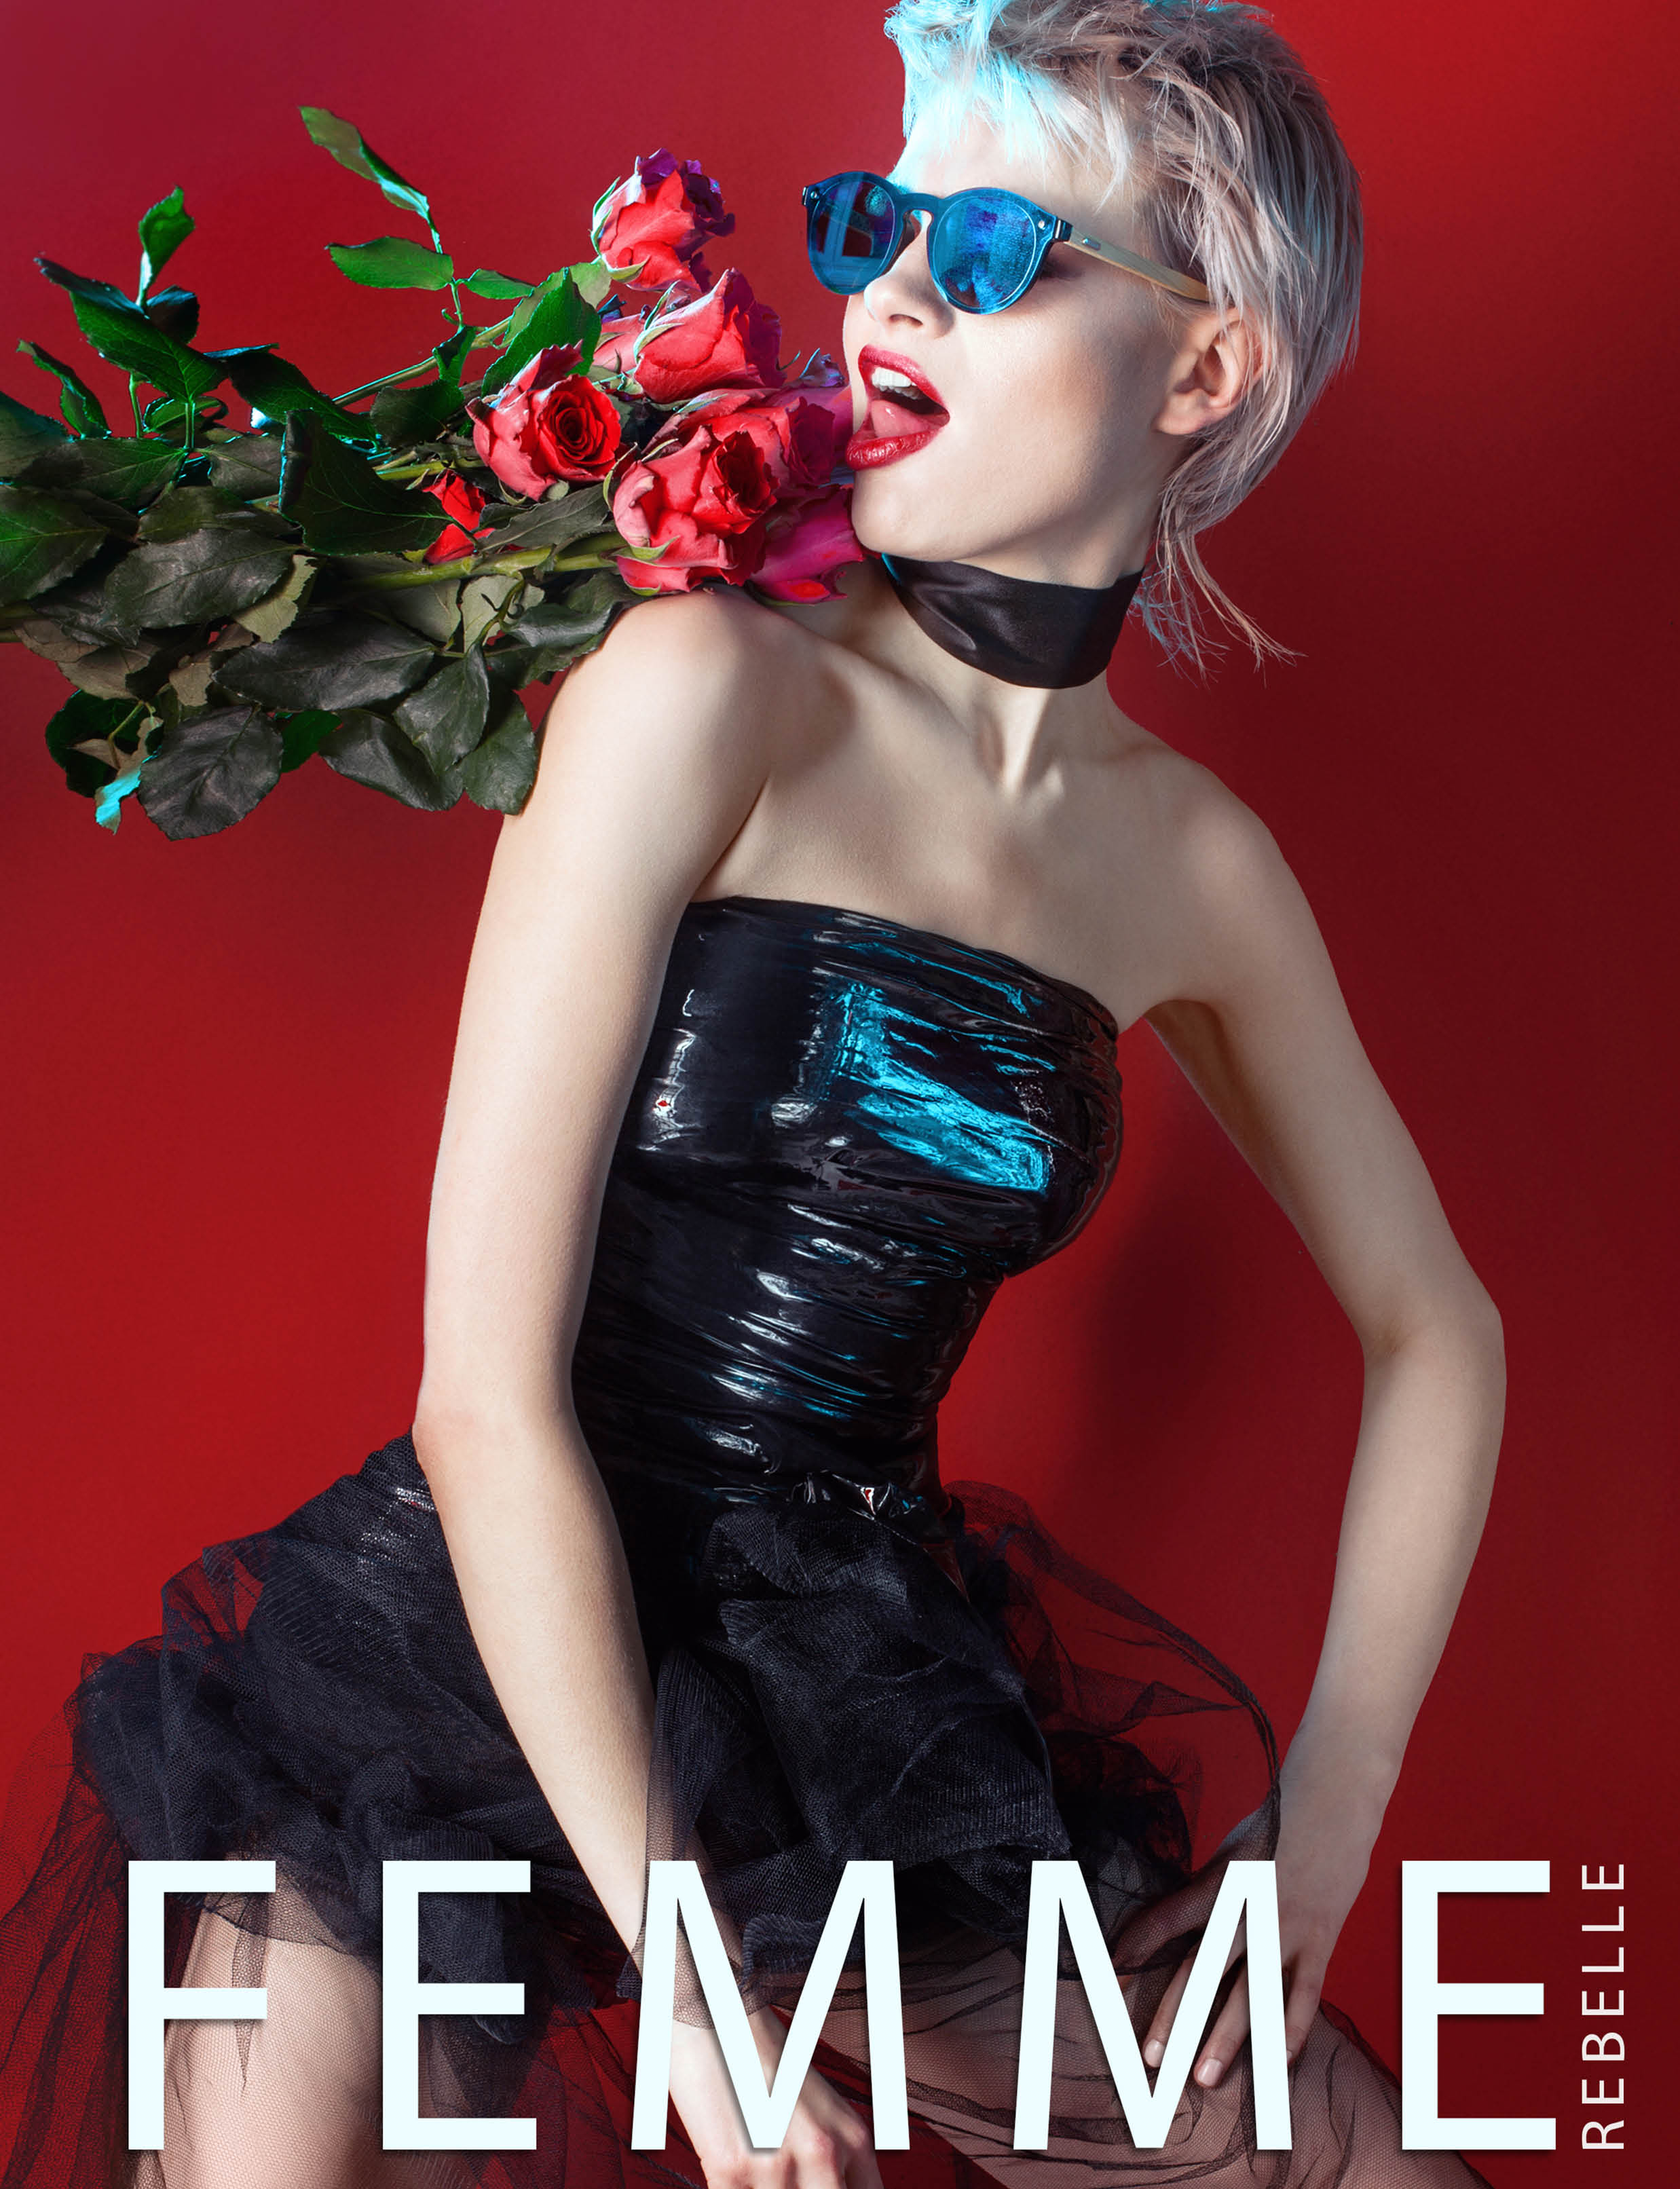 Femme Rebelle March BOOK 1 Tracey Lea Cover.jpg